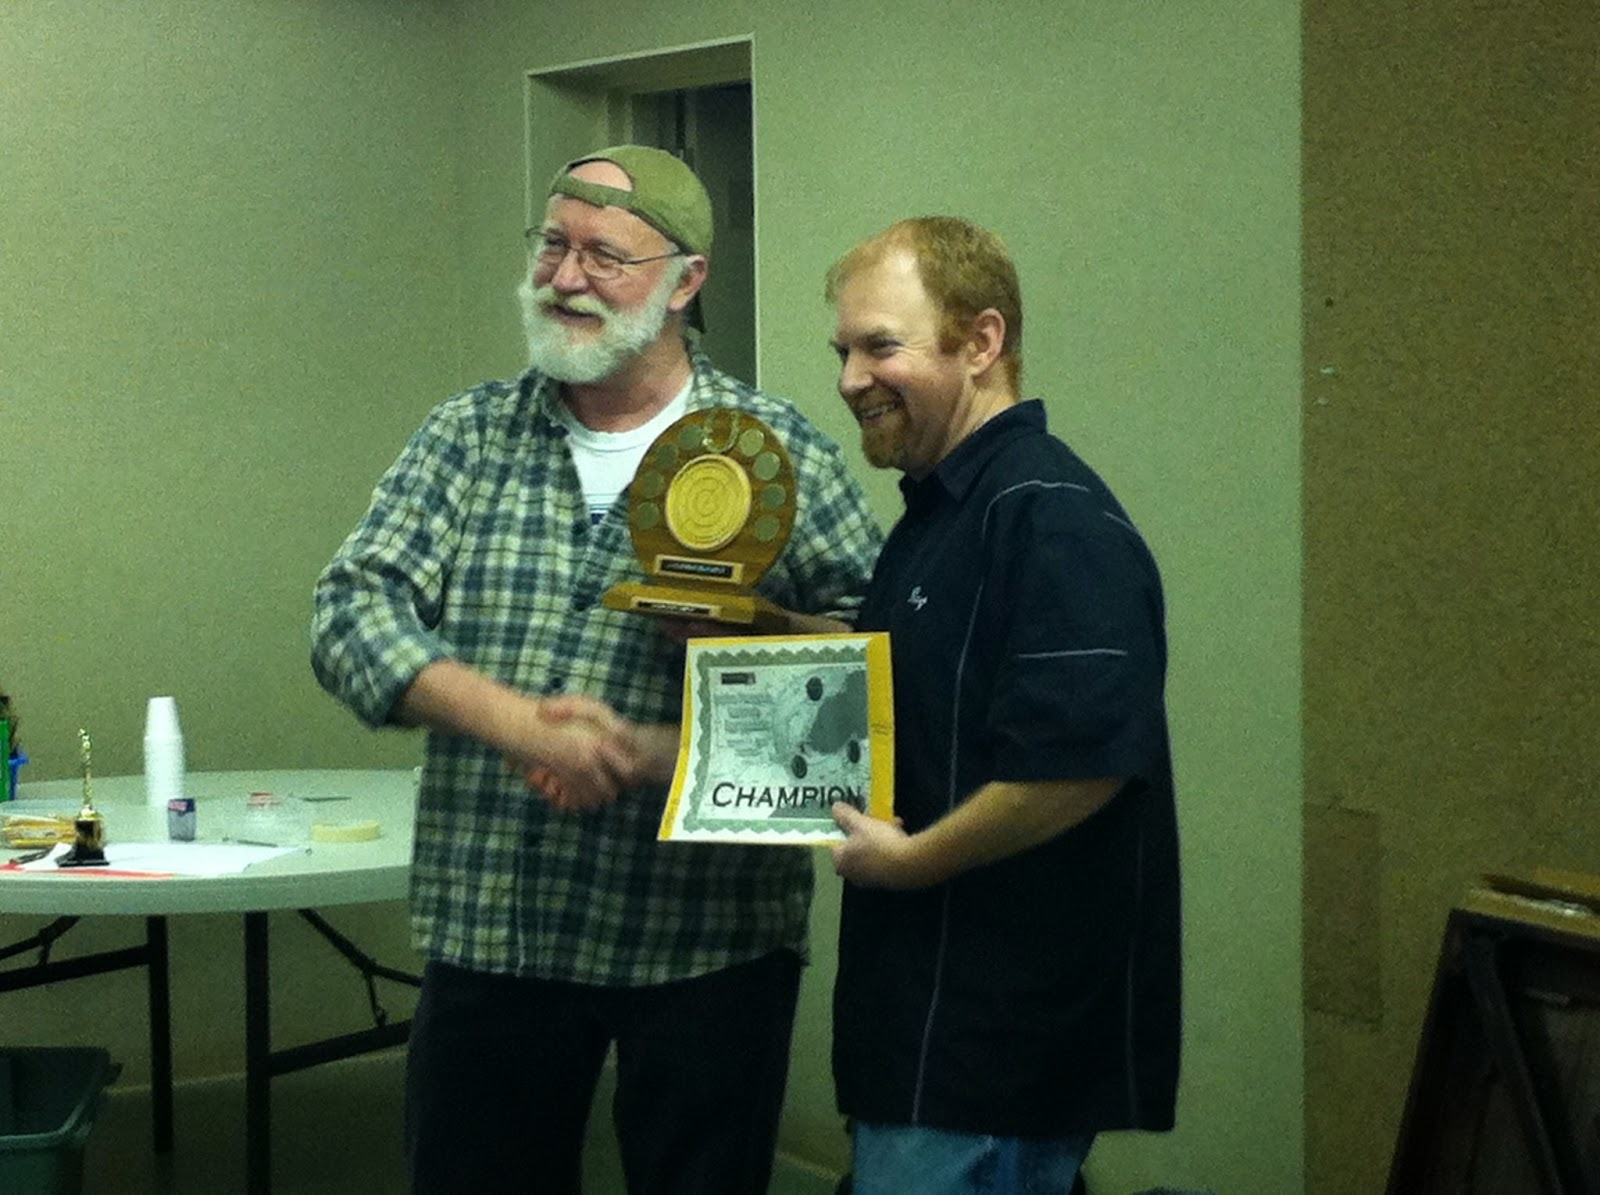 Ray Beierling accepts the title from Eric Miltenburg, his 3rd-straight tournament victory this year.